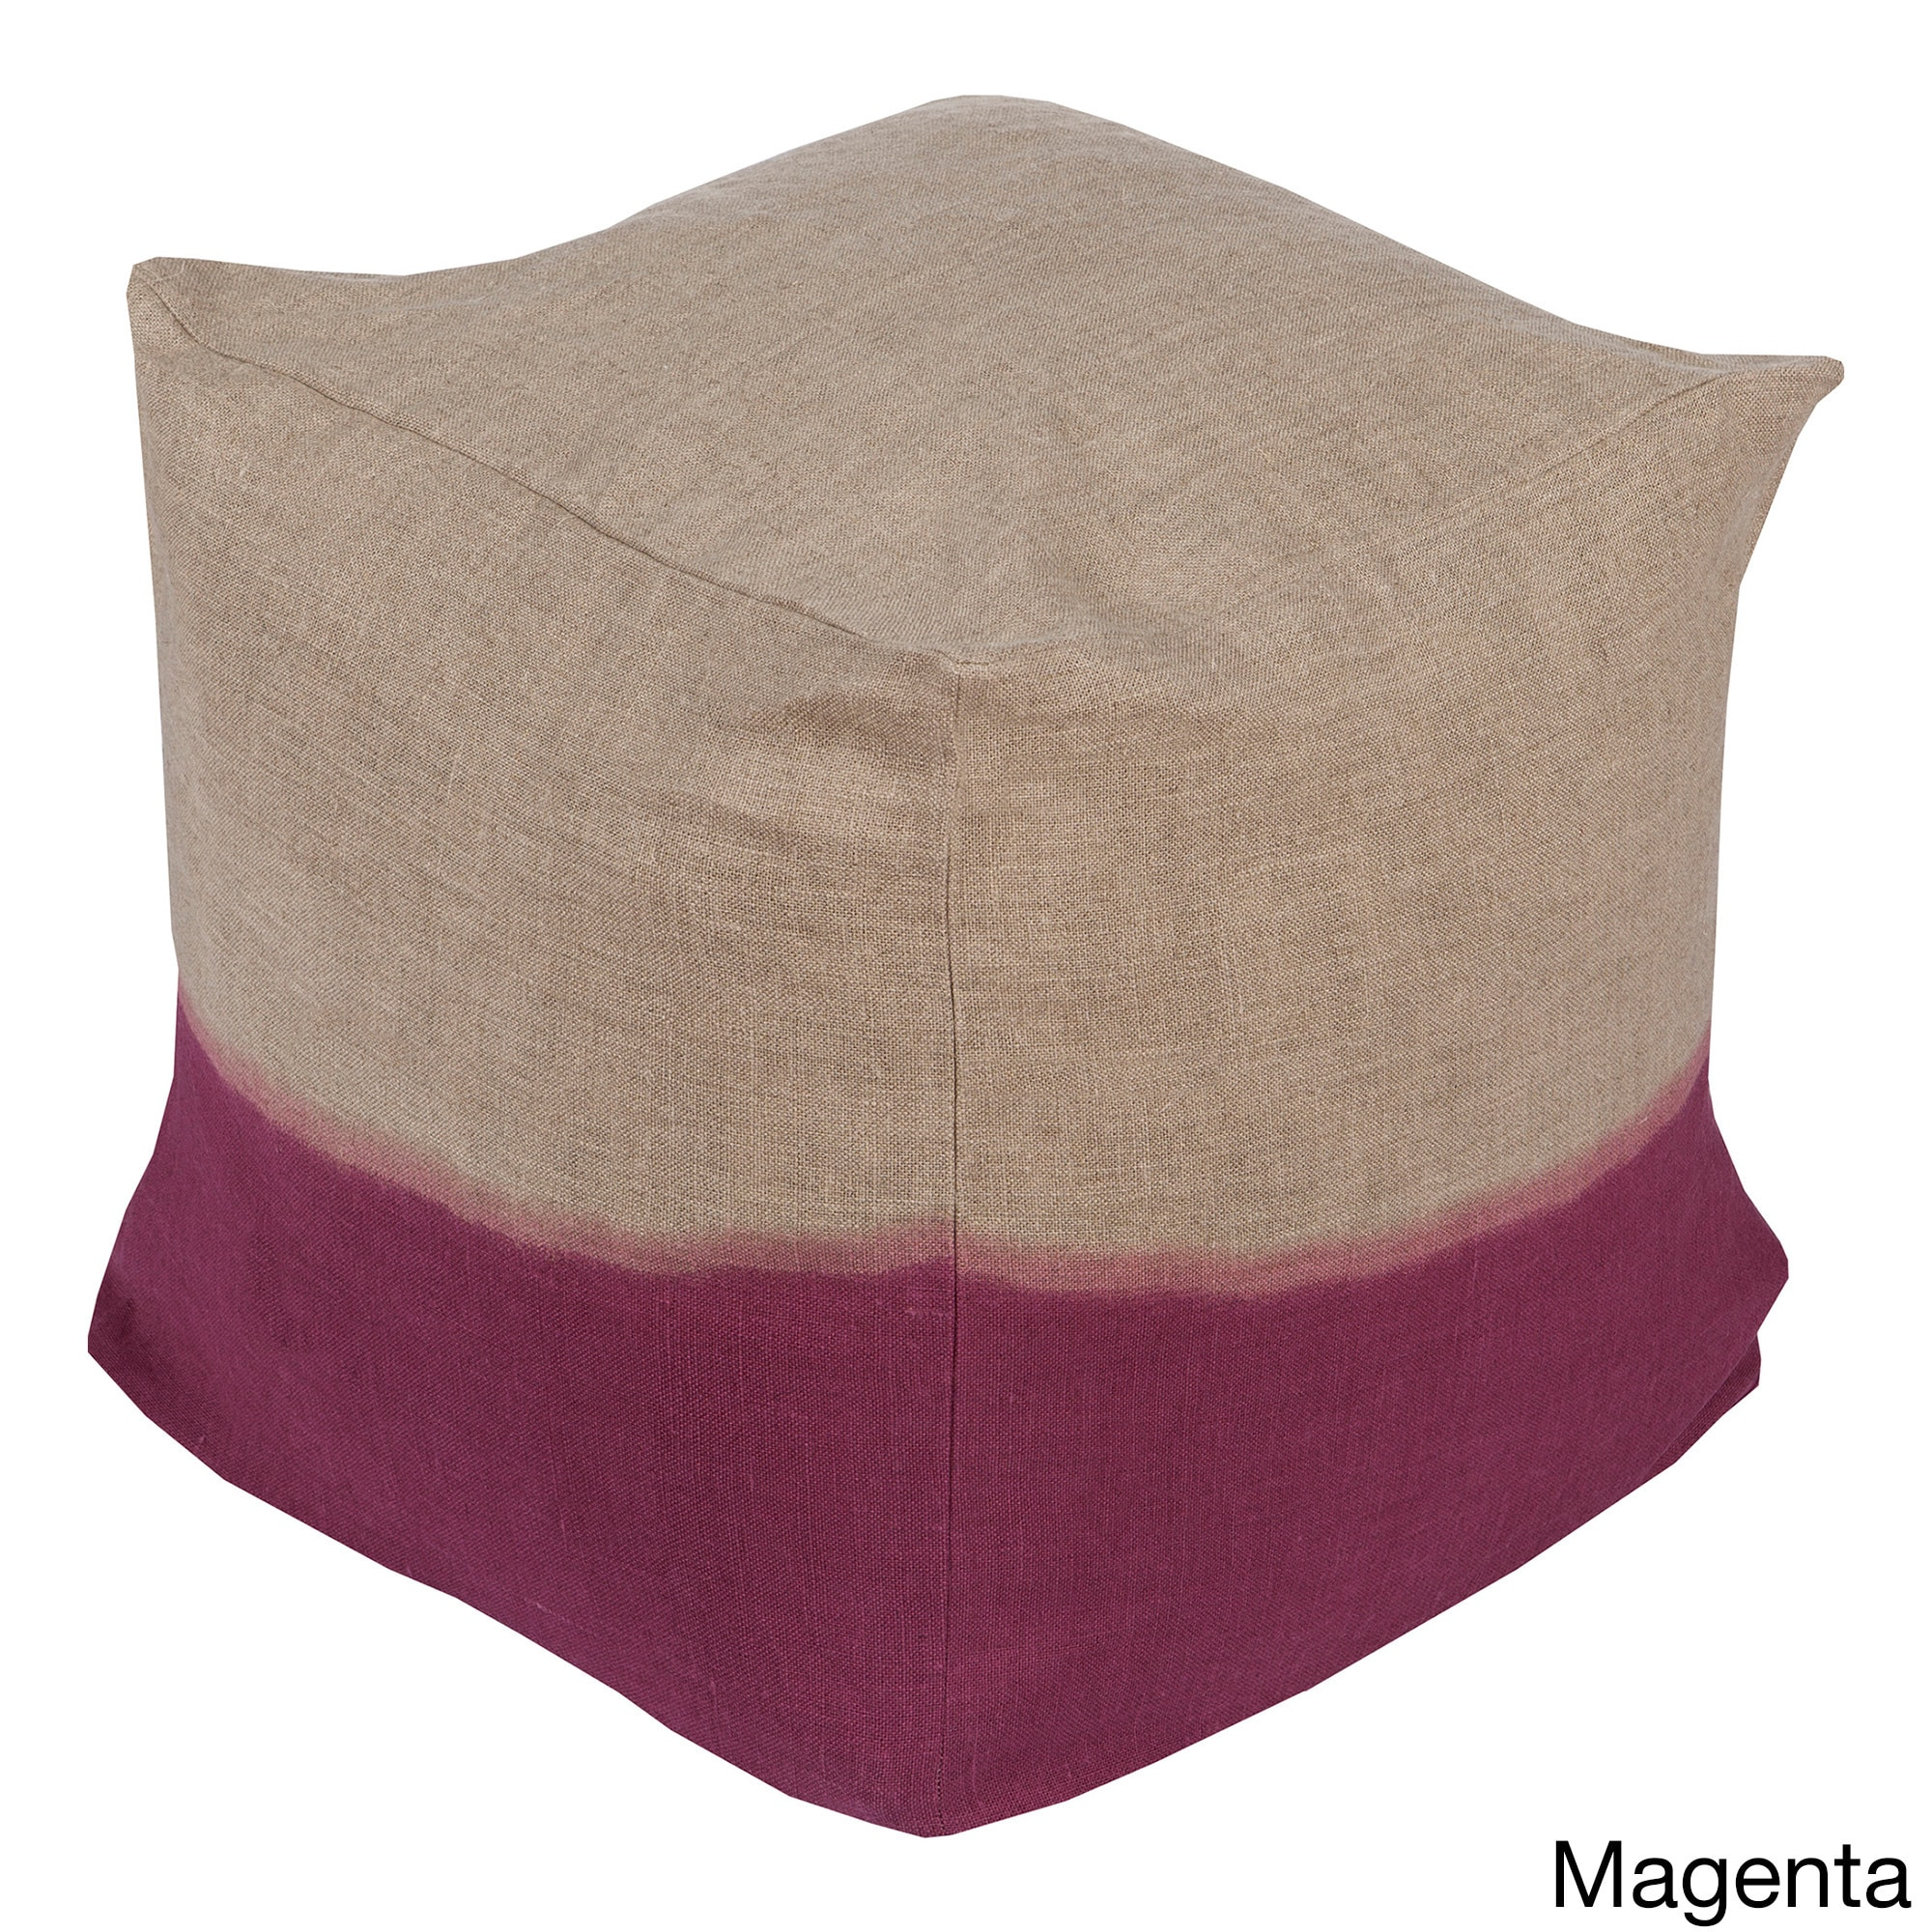 SURYA Solid Lada Square Linen 18-inch Pouf (Pink), Size 1...